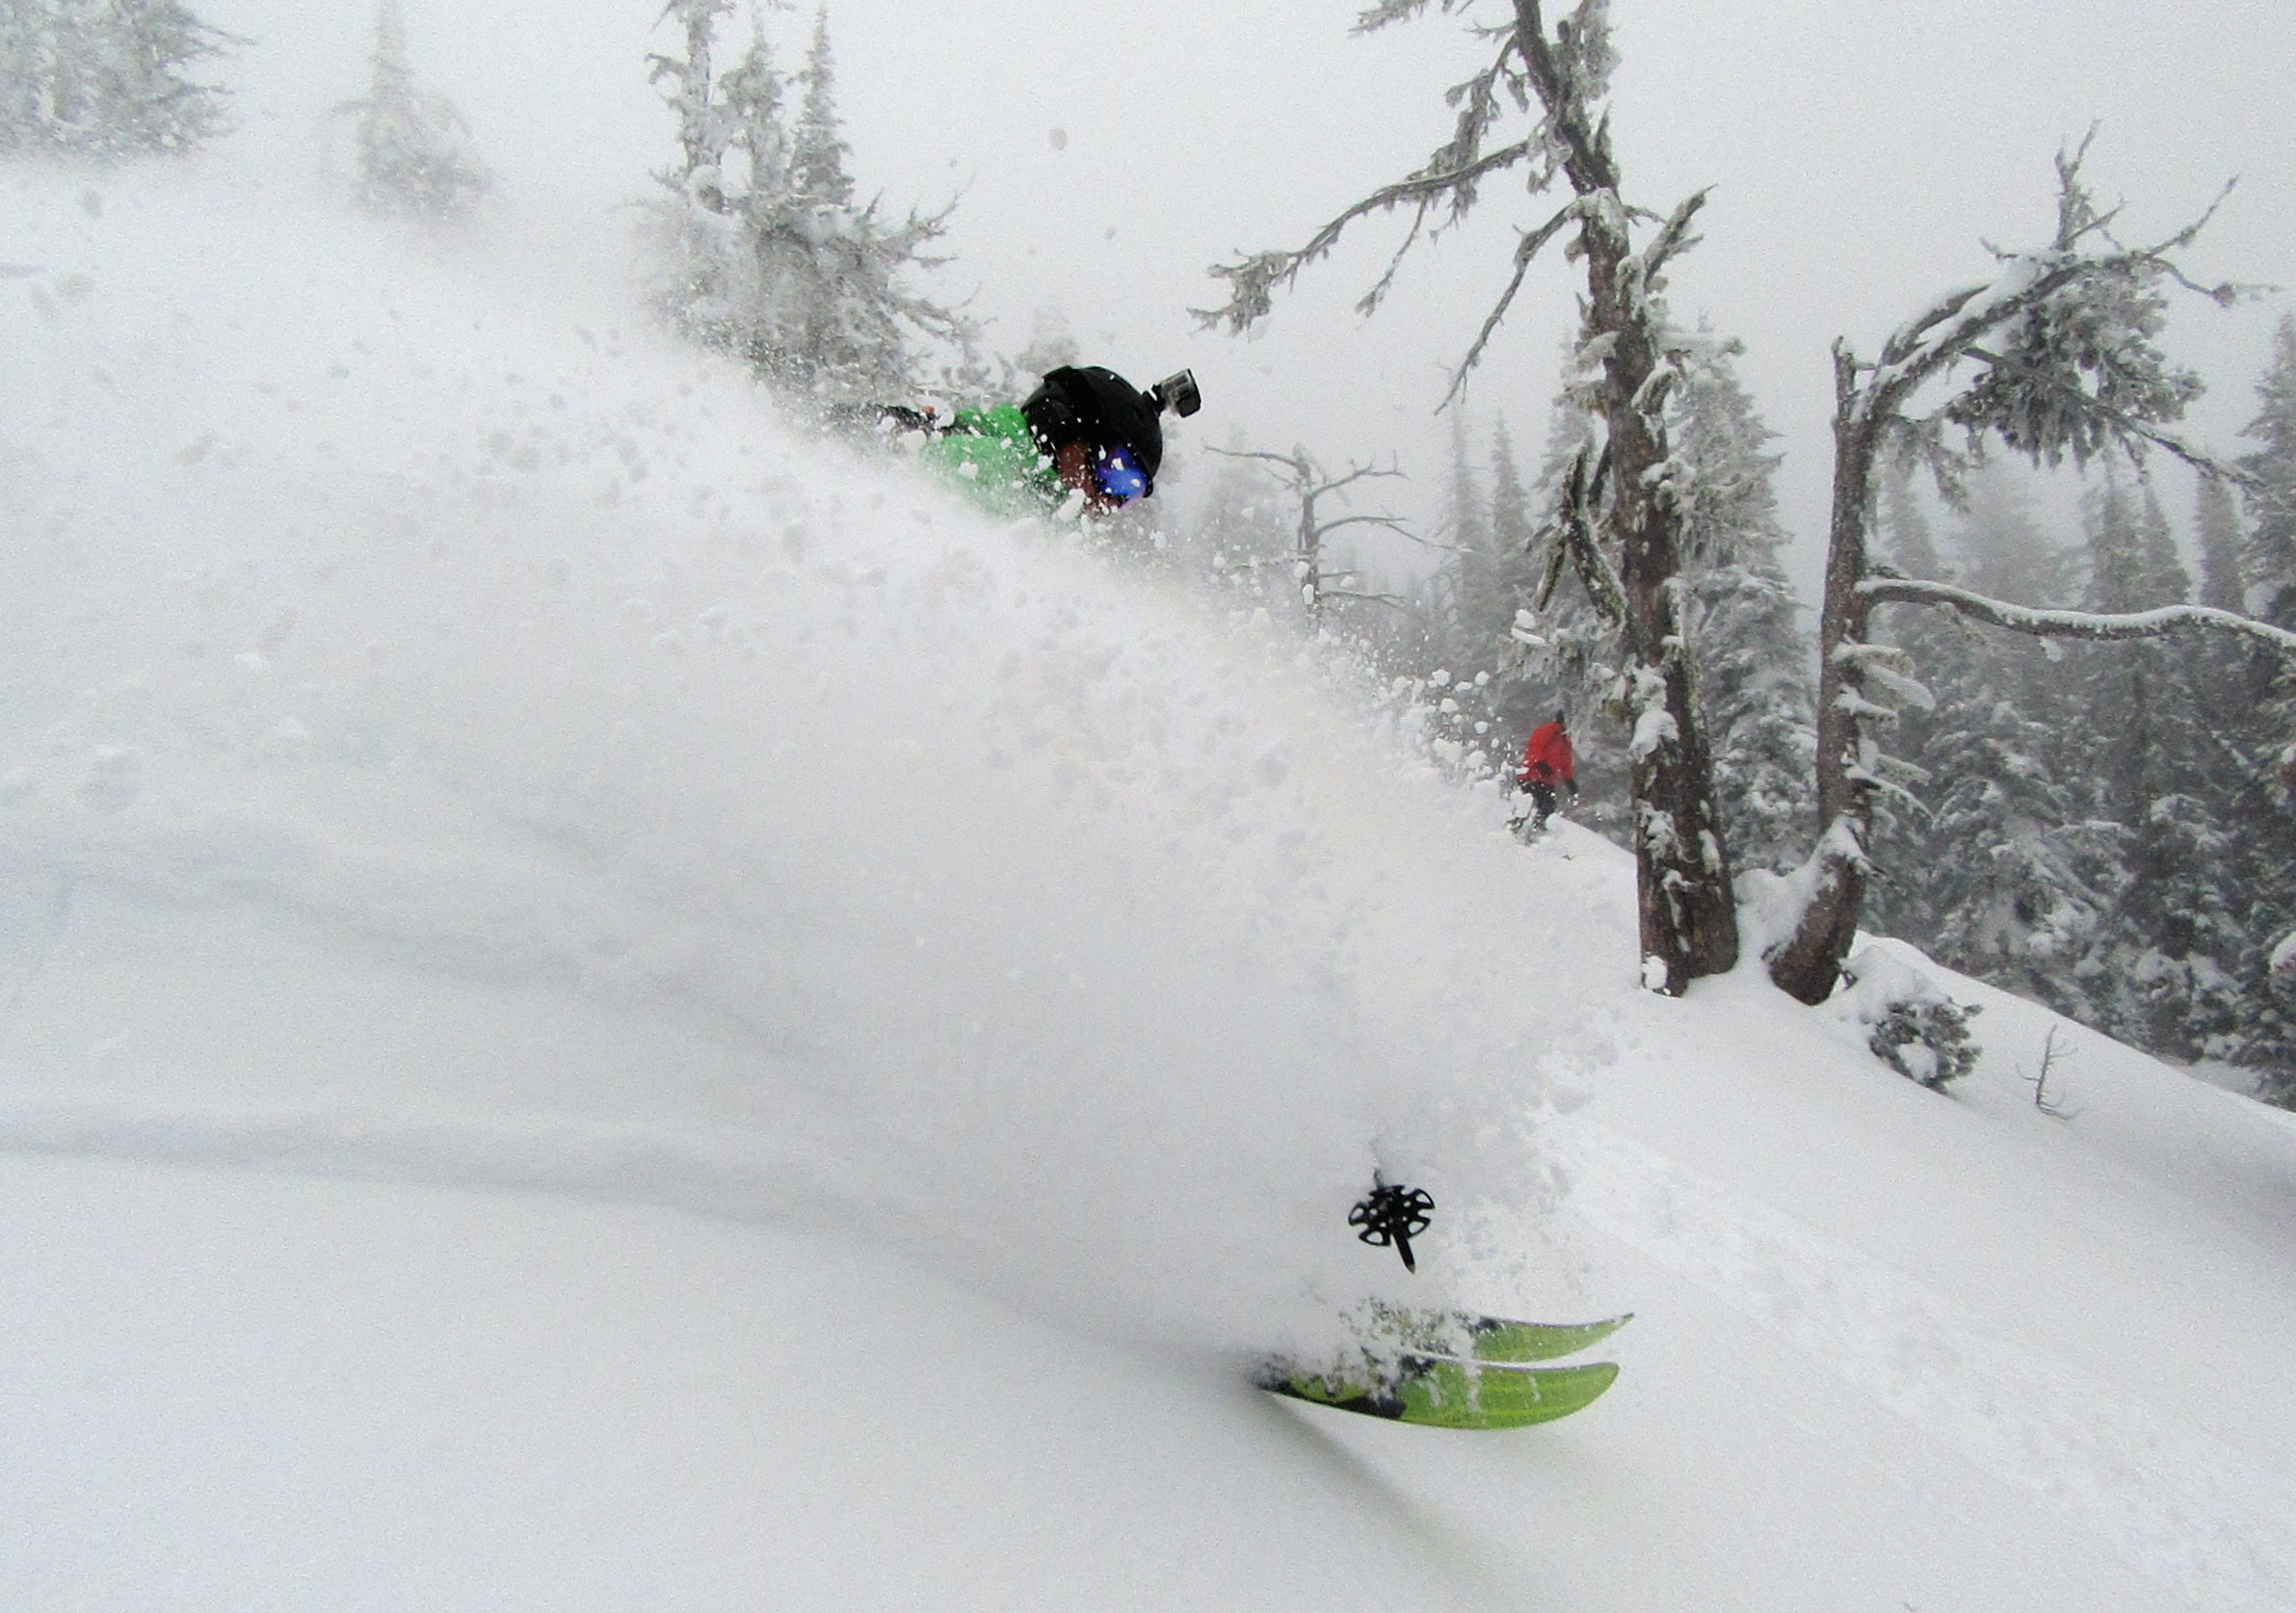 Top Dog shredding pow